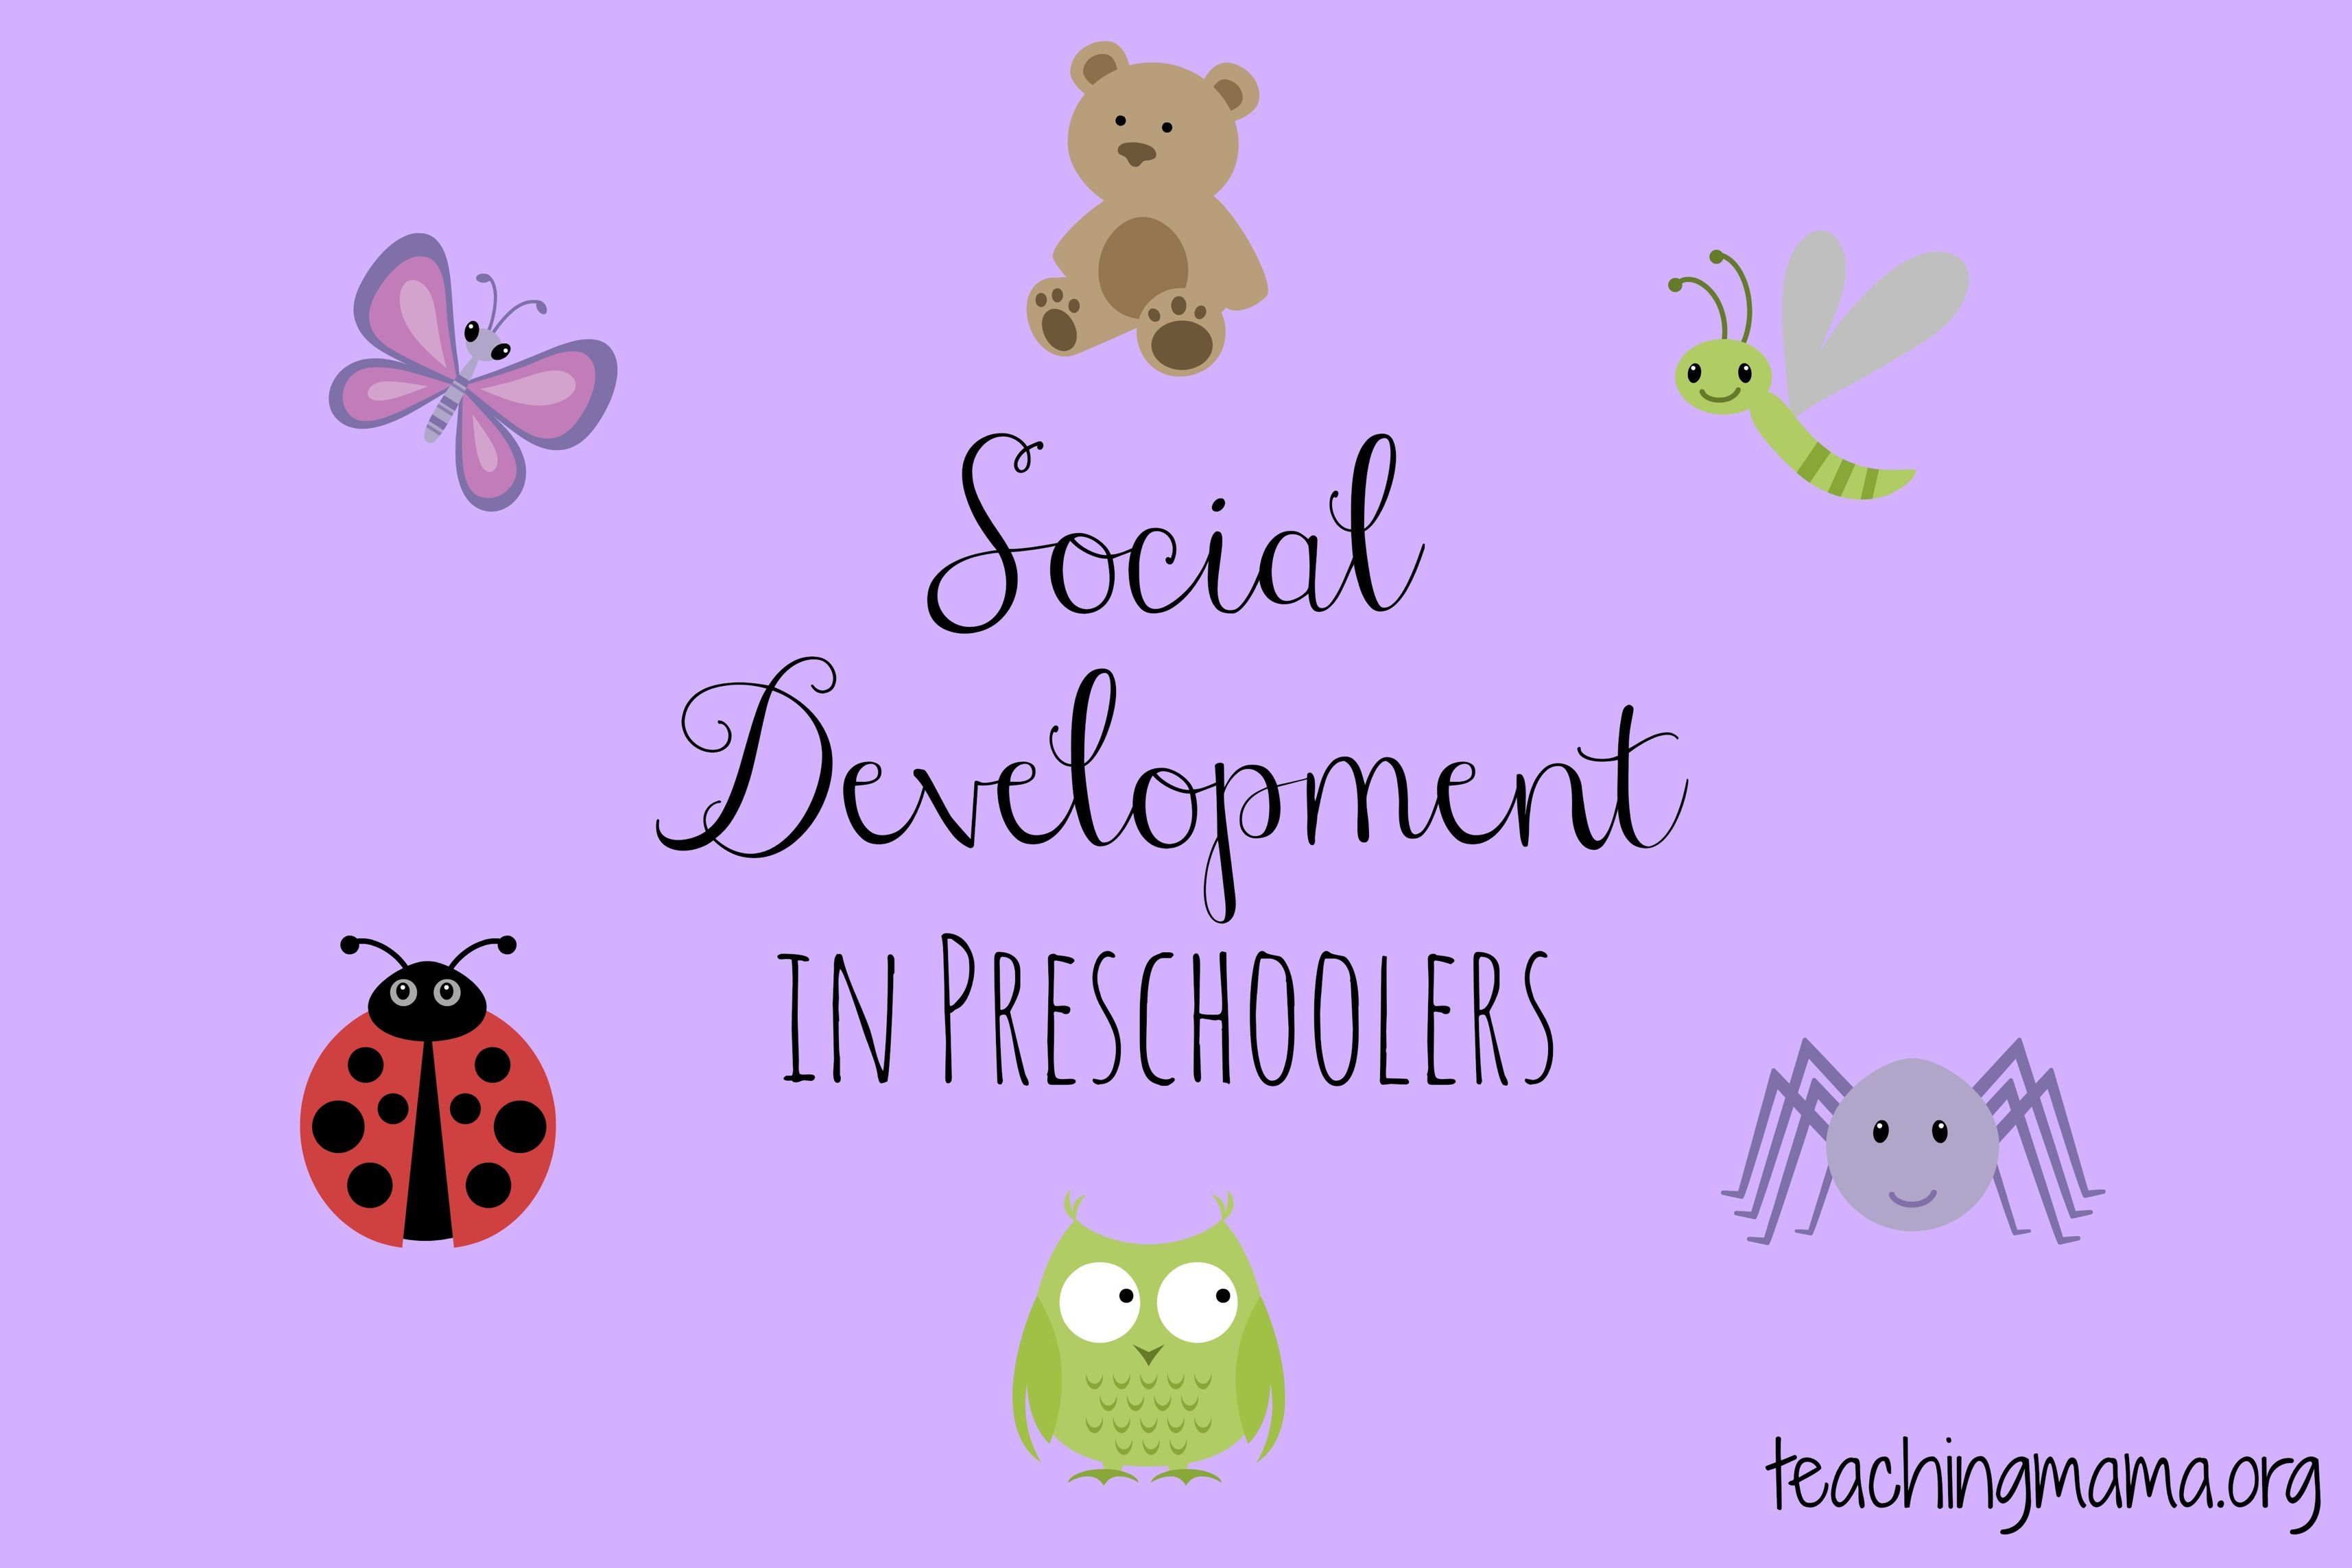 Social Development in Preschoolers (With images ...